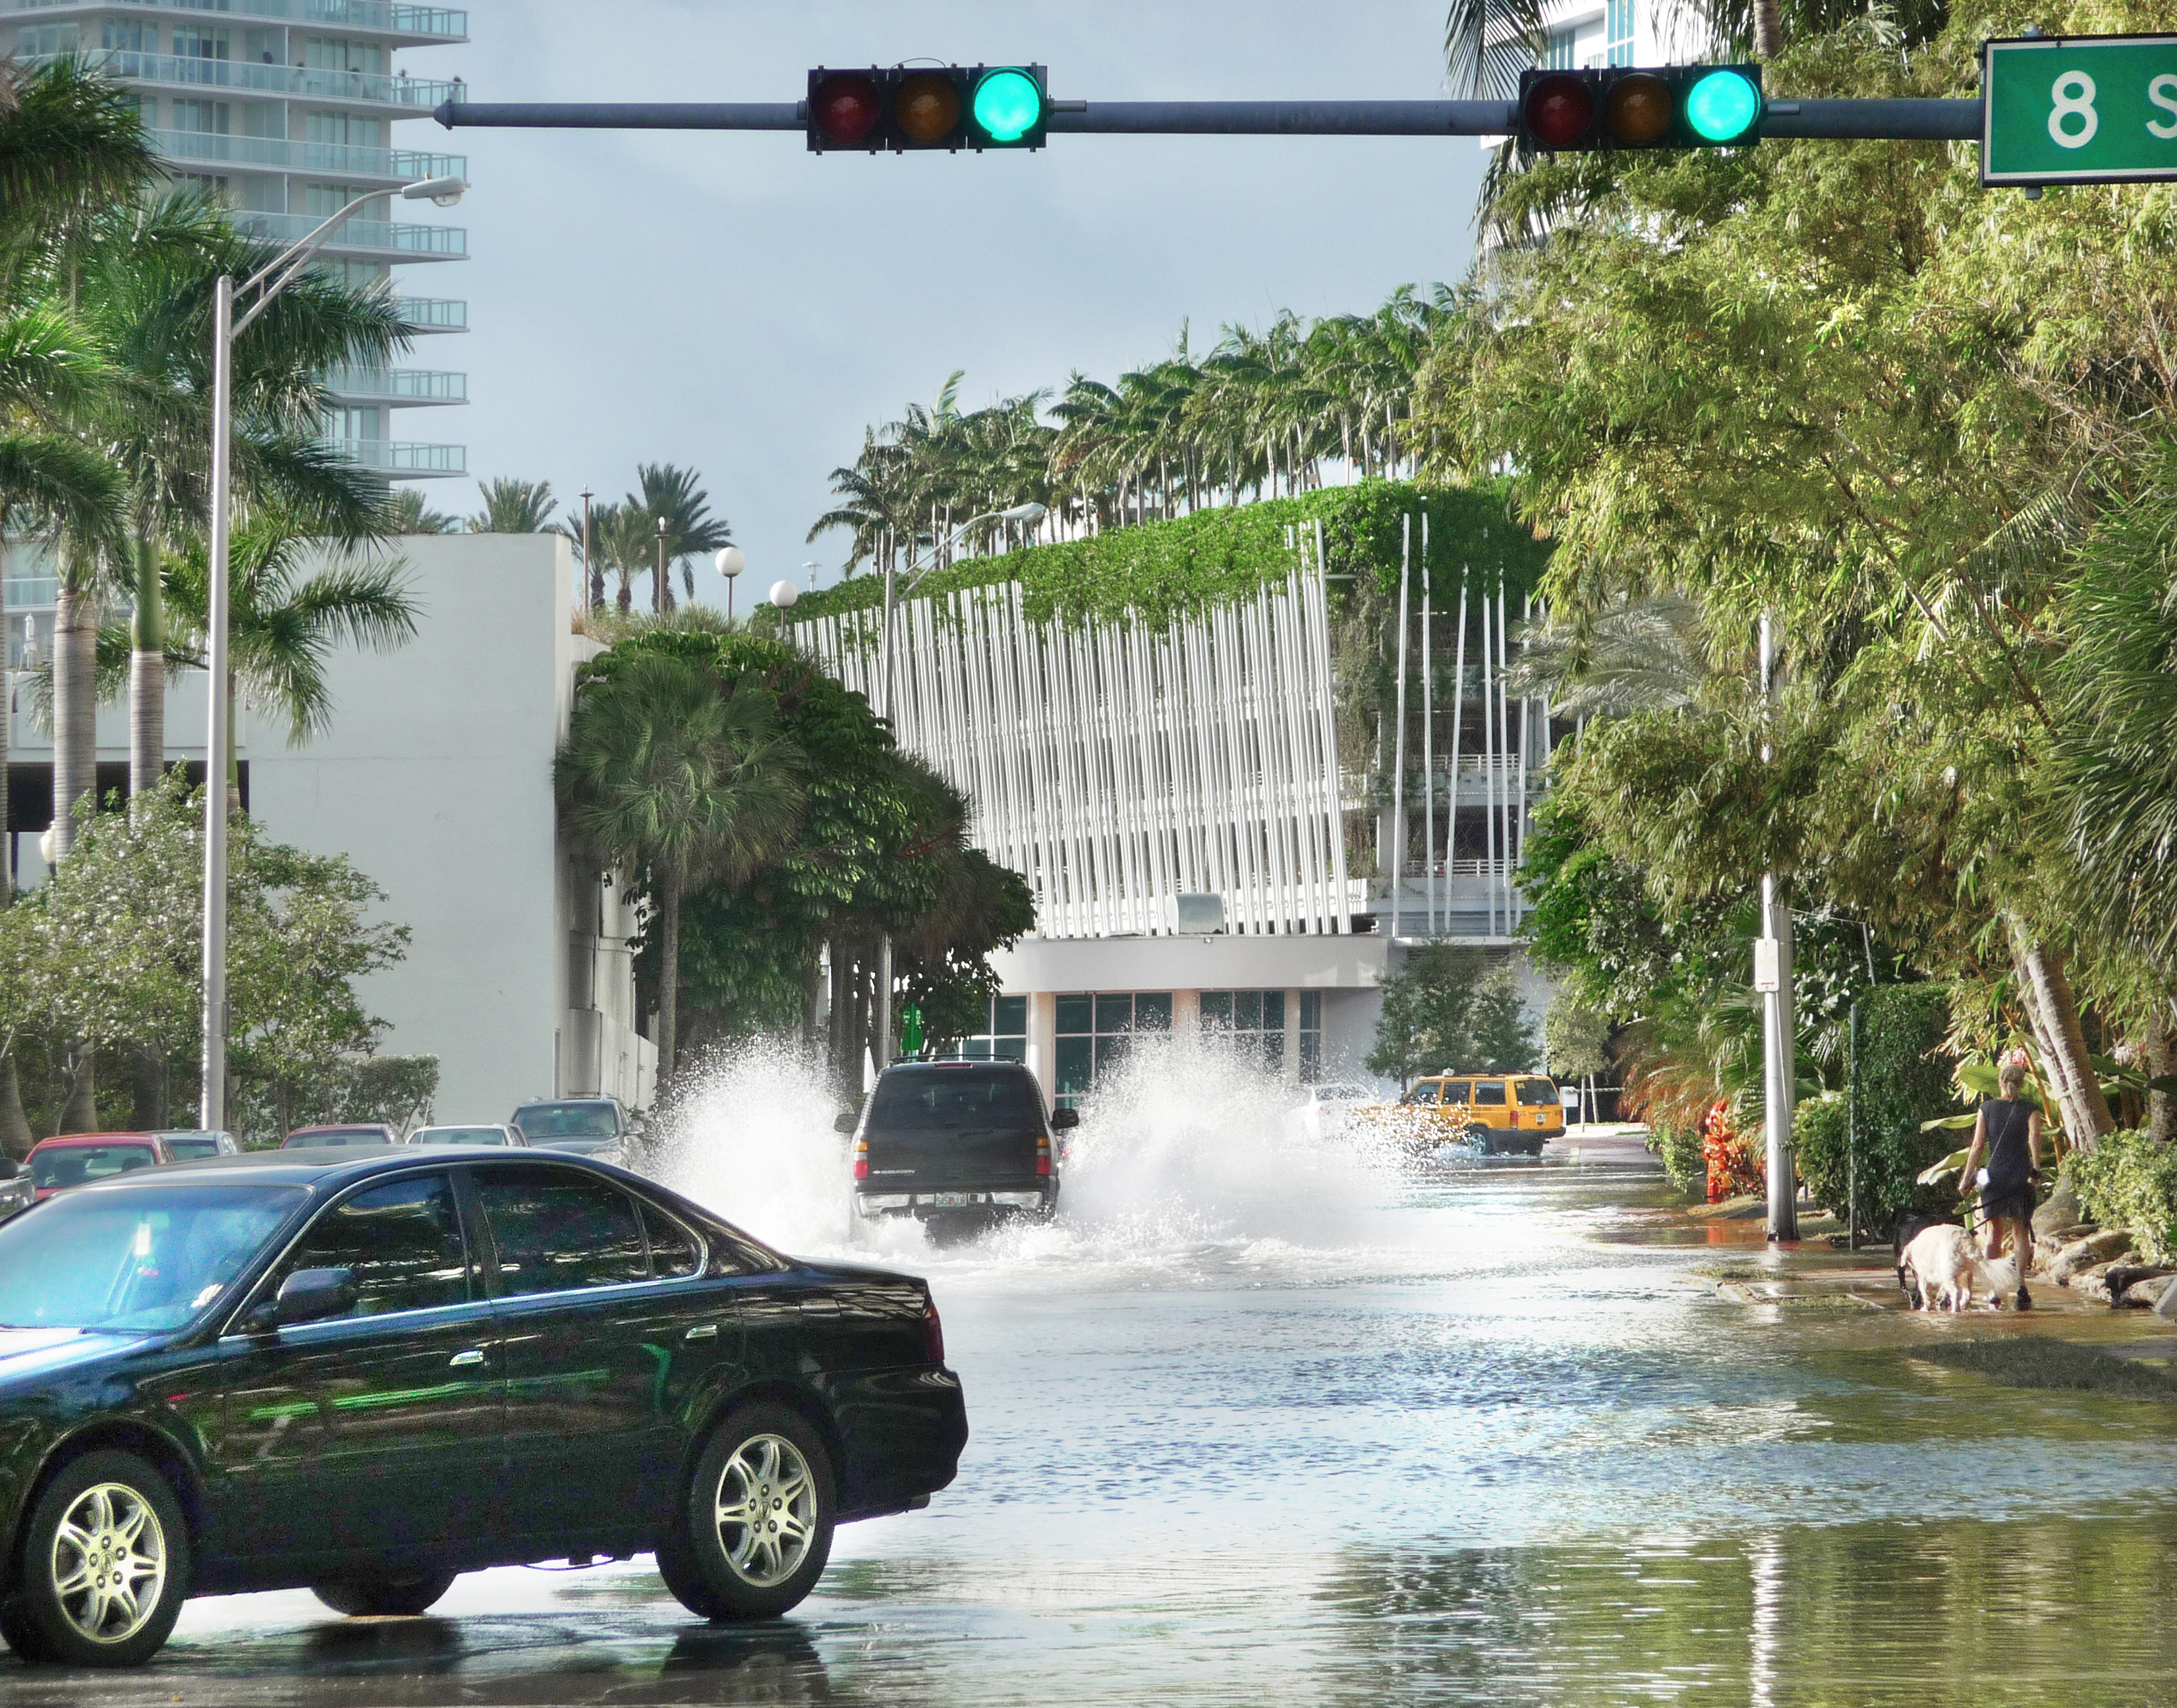 Cars speeding through an intersection flooded with water during a high tide.